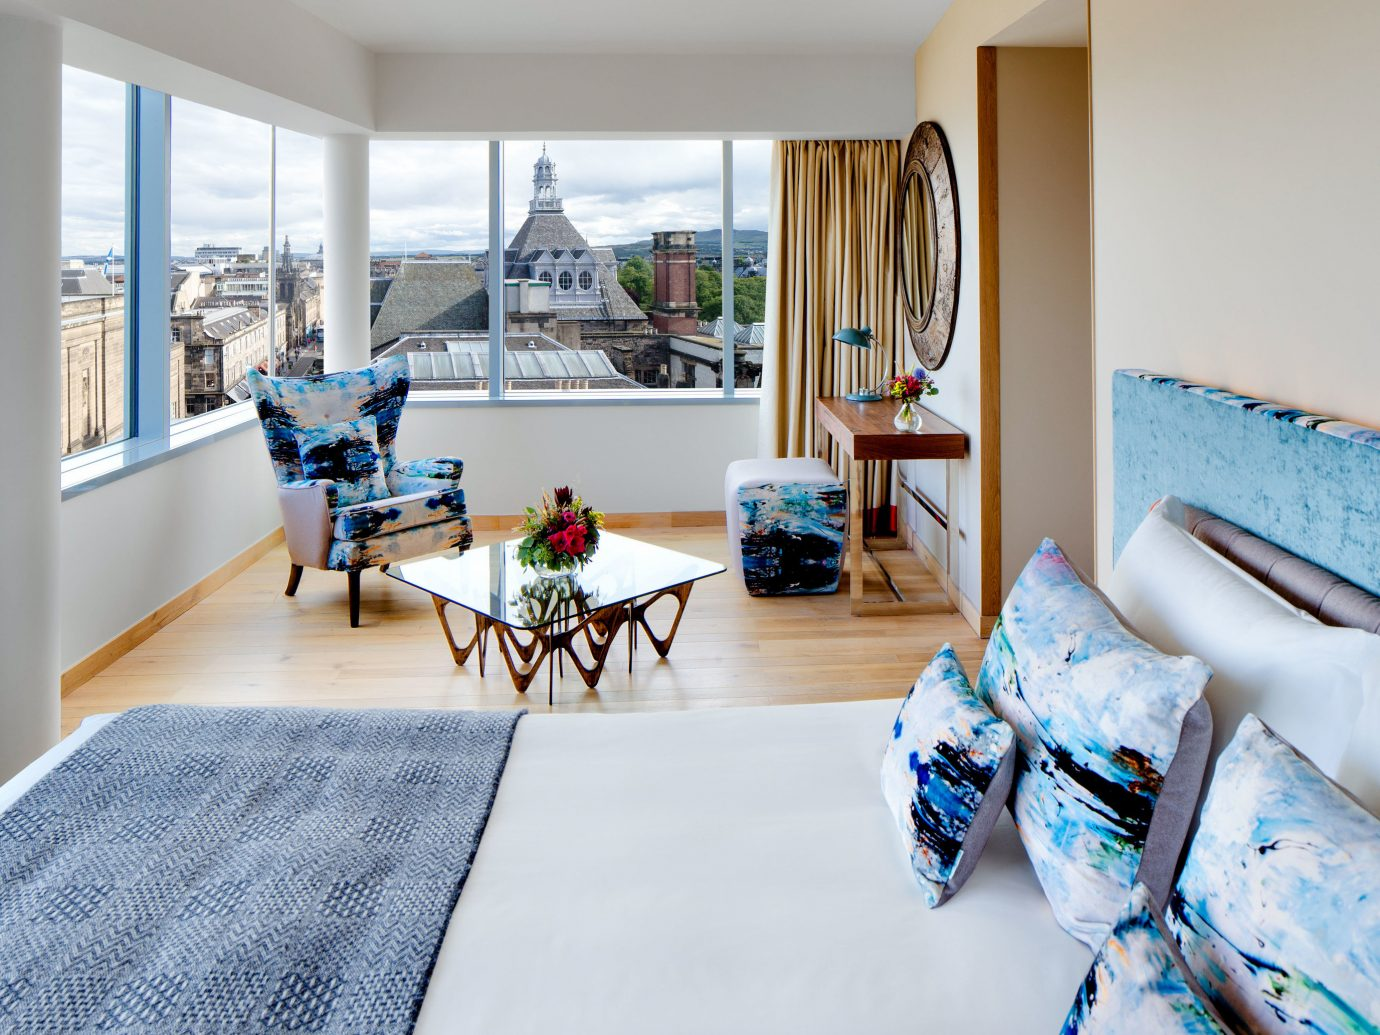 Edinburgh Hotels Jetsetter Guides Scotland Travel Tips Trip Ideas indoor window wall floor room Living furniture home ceiling interior design living room decorated real estate Suite house Bedroom colored